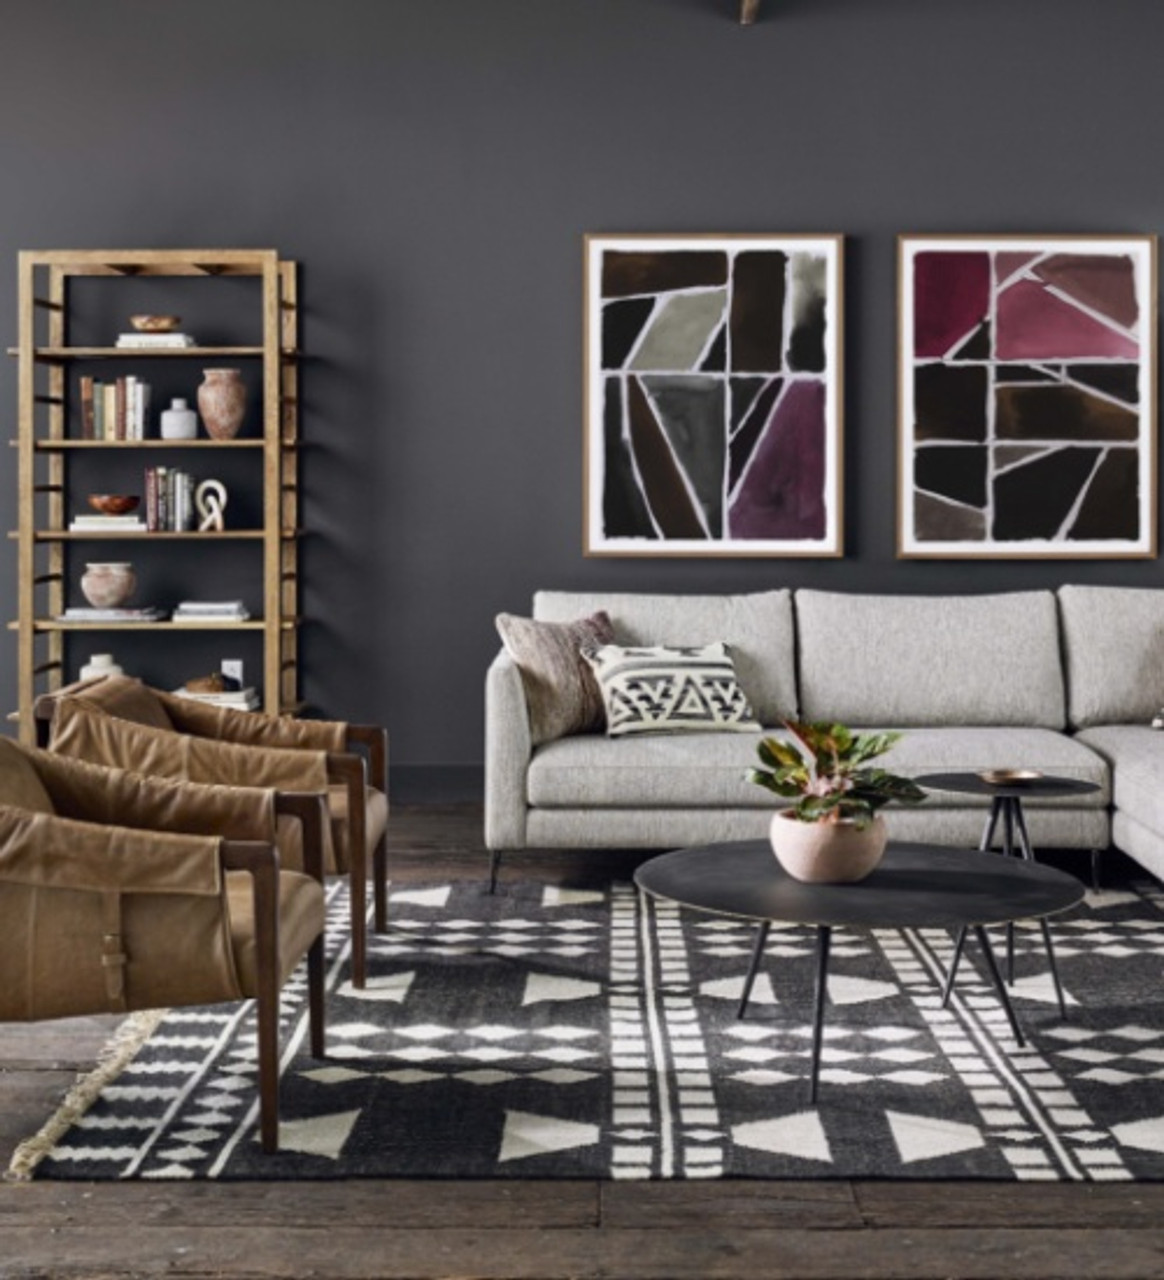 Shop The Look: Artisan Eclectic Loft Living Room